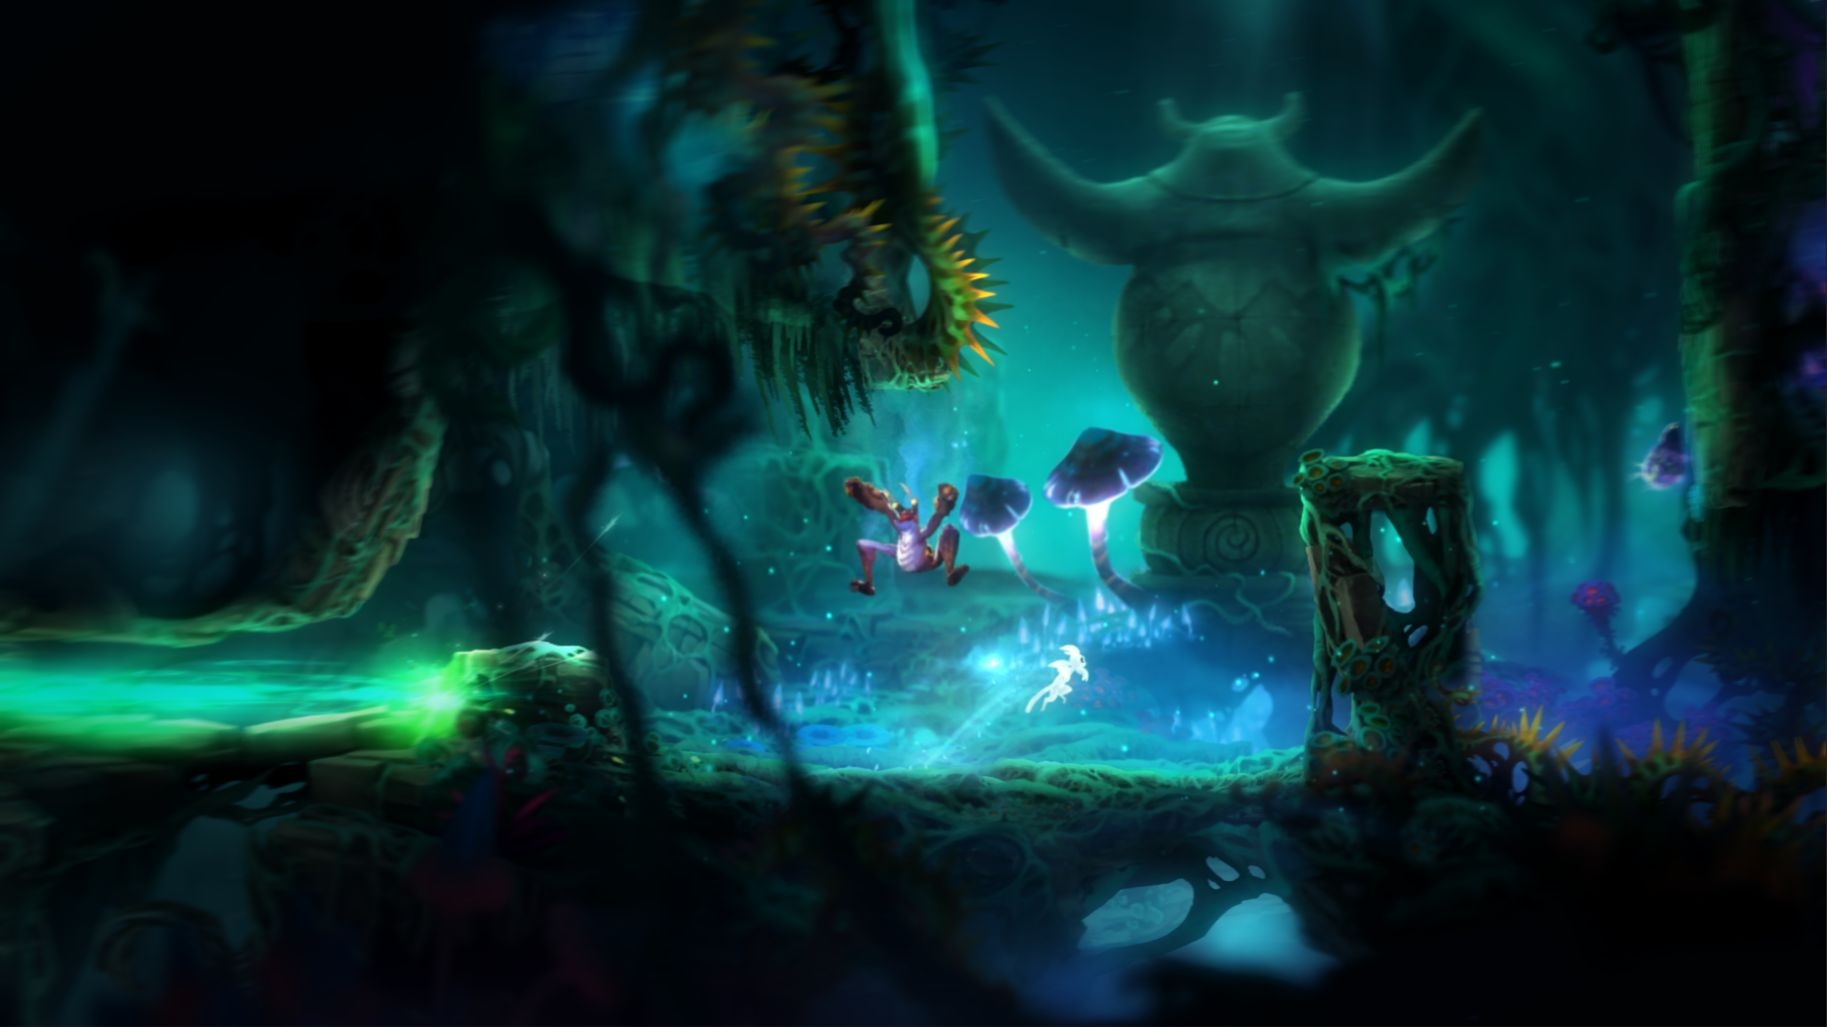 ori_and_the_blind_forest_definitive_edition_screenshot_20160301164816_12_original